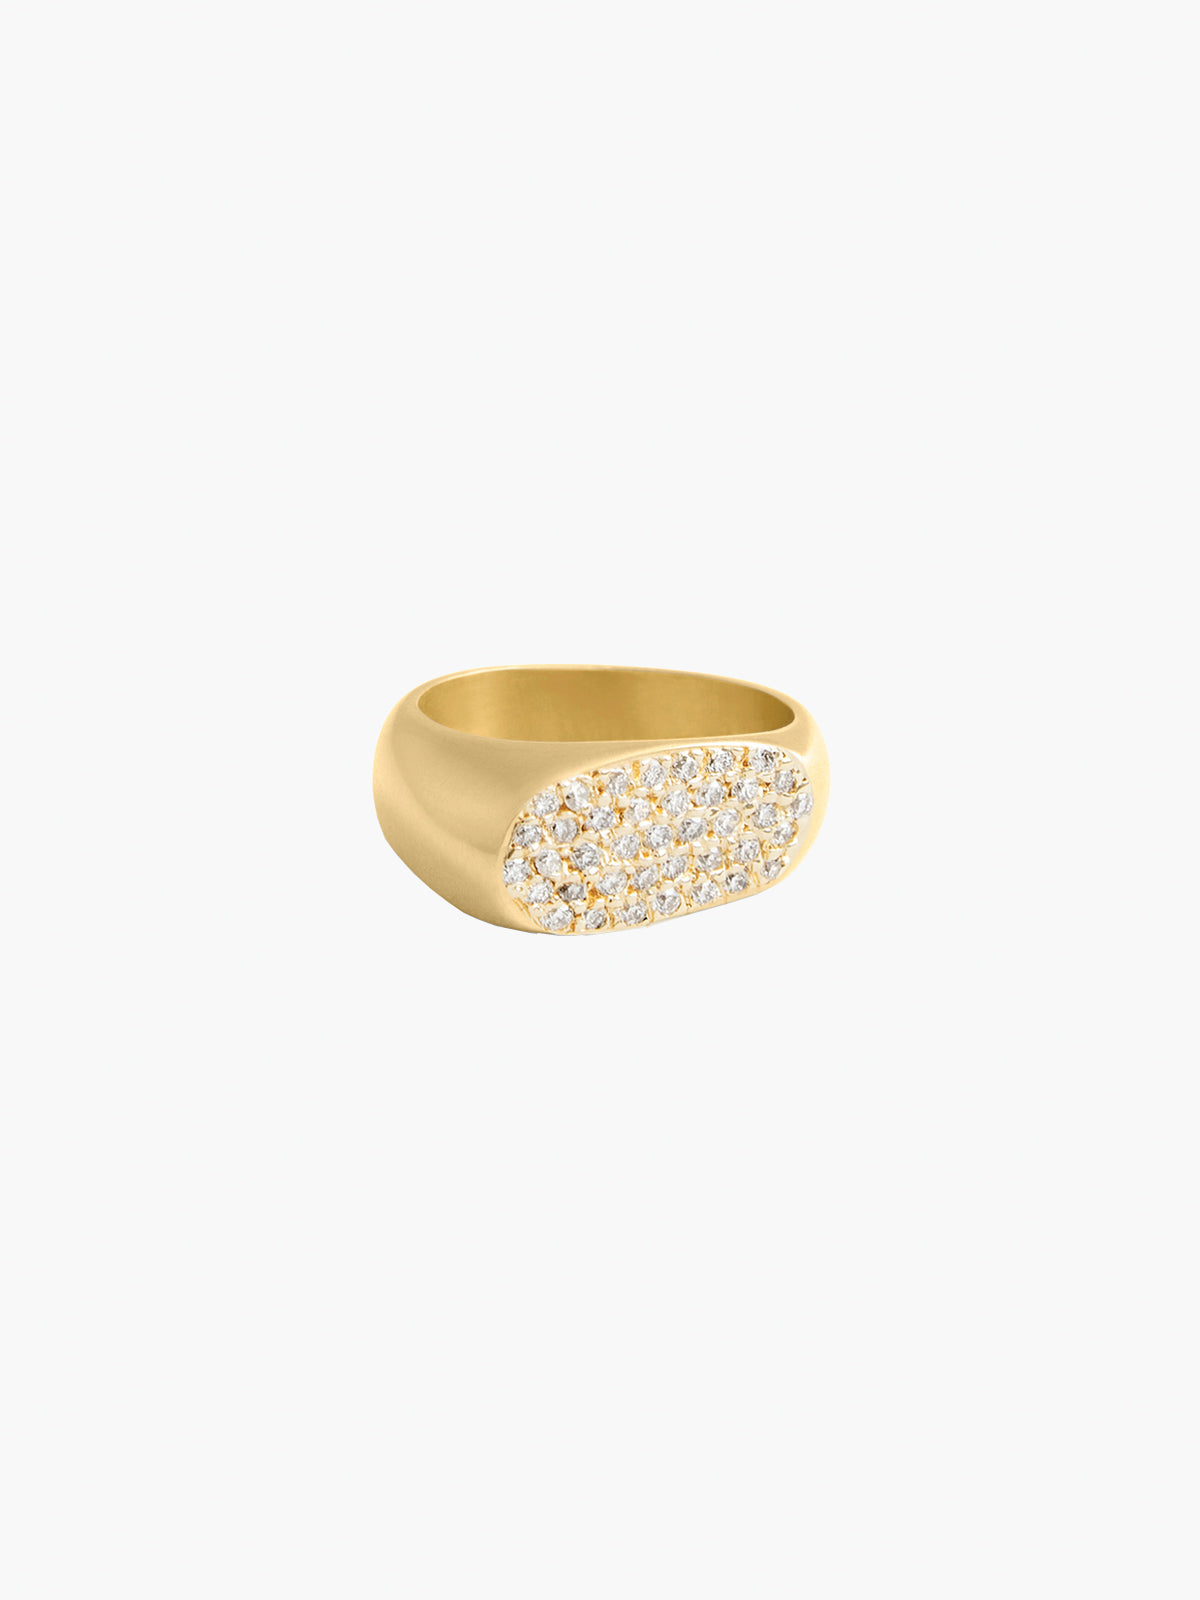 Lipstick Ring | Yellow Gold Pave Lipstick Ring | Yellow Gold Pave